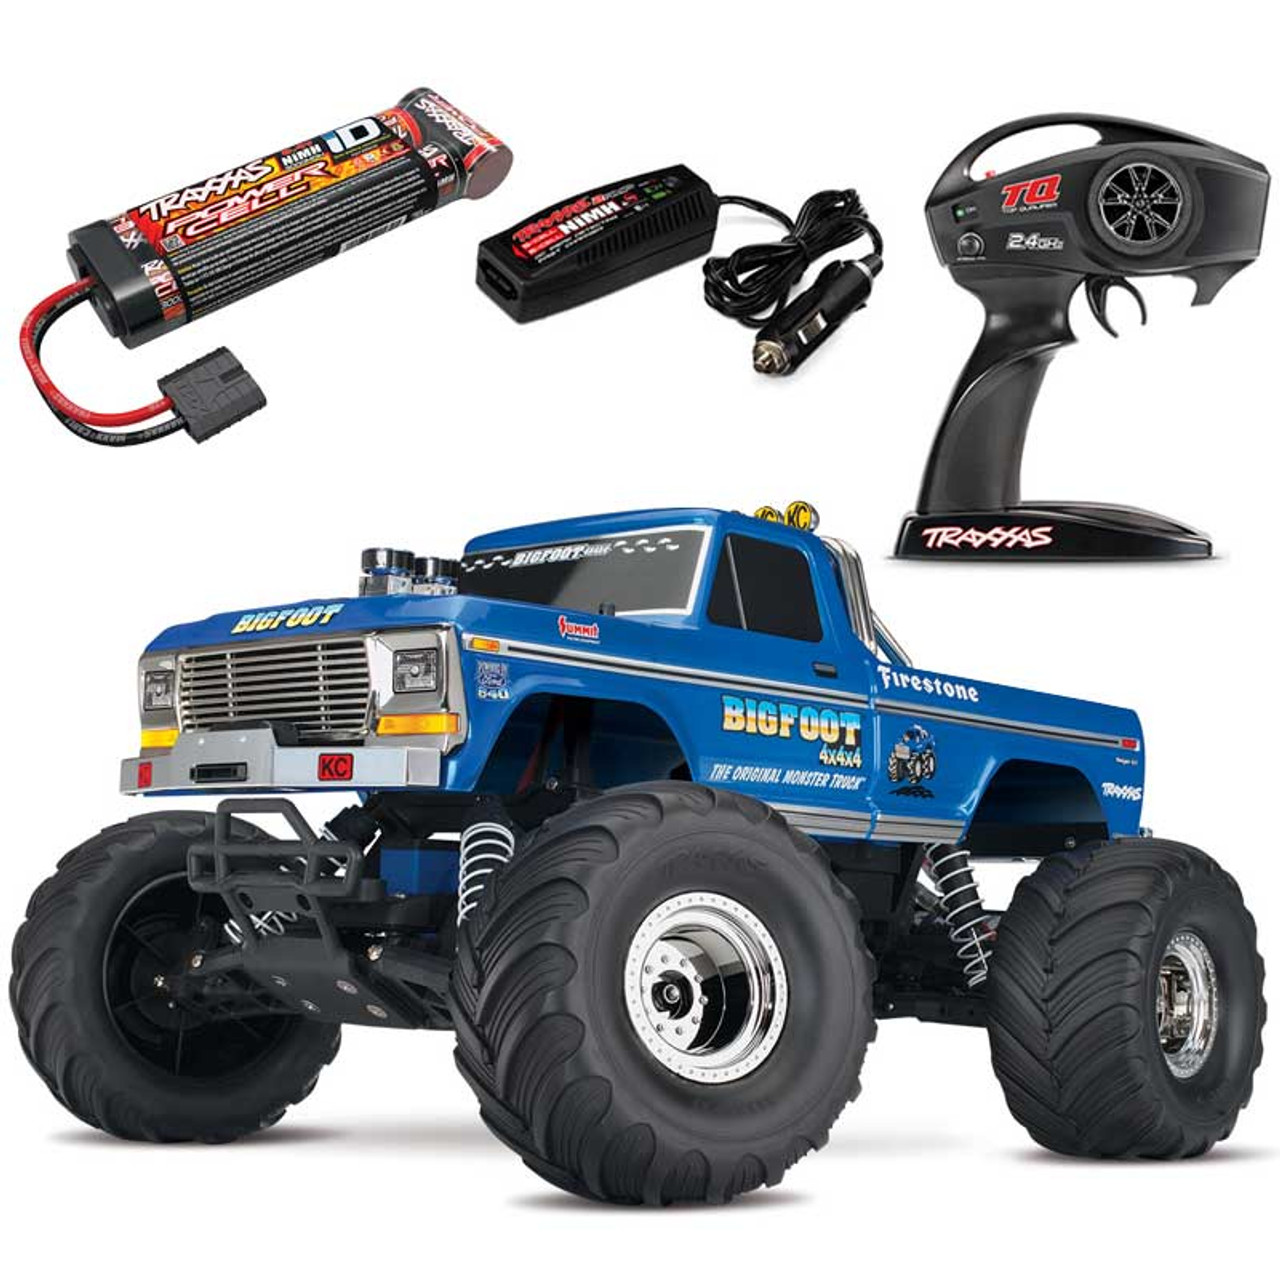 Traxxas Bigfoot Classic 2wd Rtr Rc Monster Truck